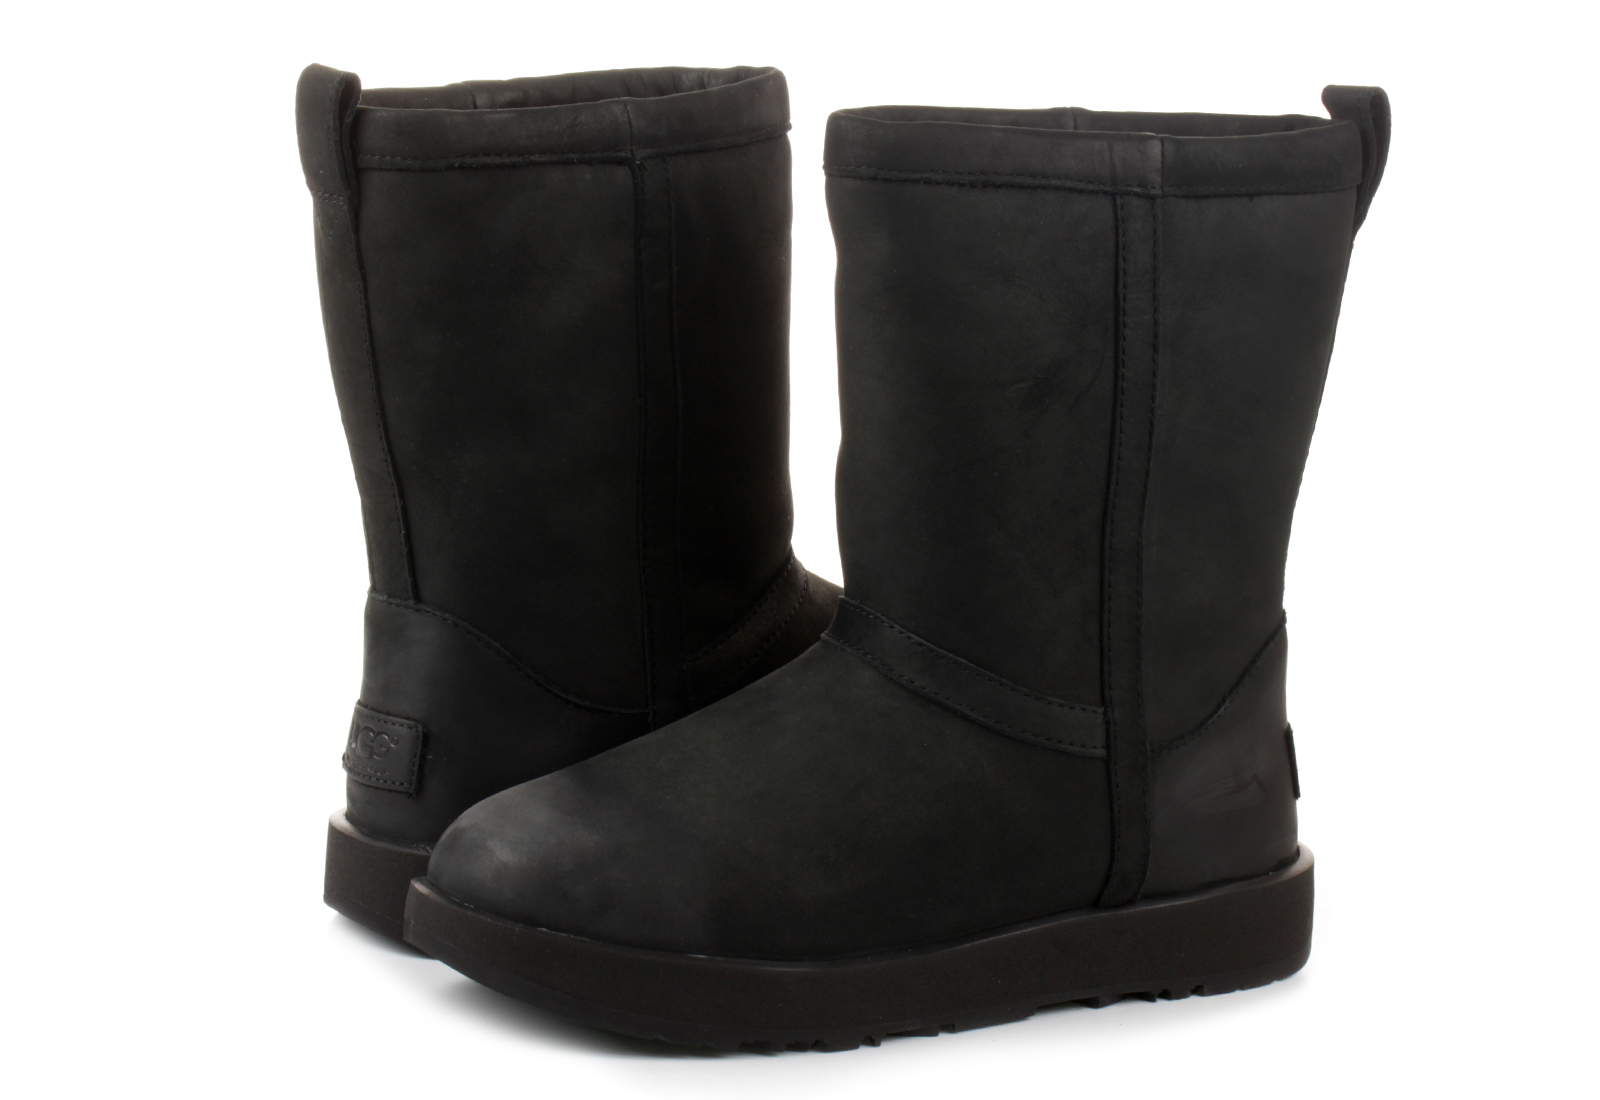 85ee829b73c Ugg Boots - Classic Short Leather Waterproof - 1017509-BLK - Online shop  for sneakers, shoes and boots